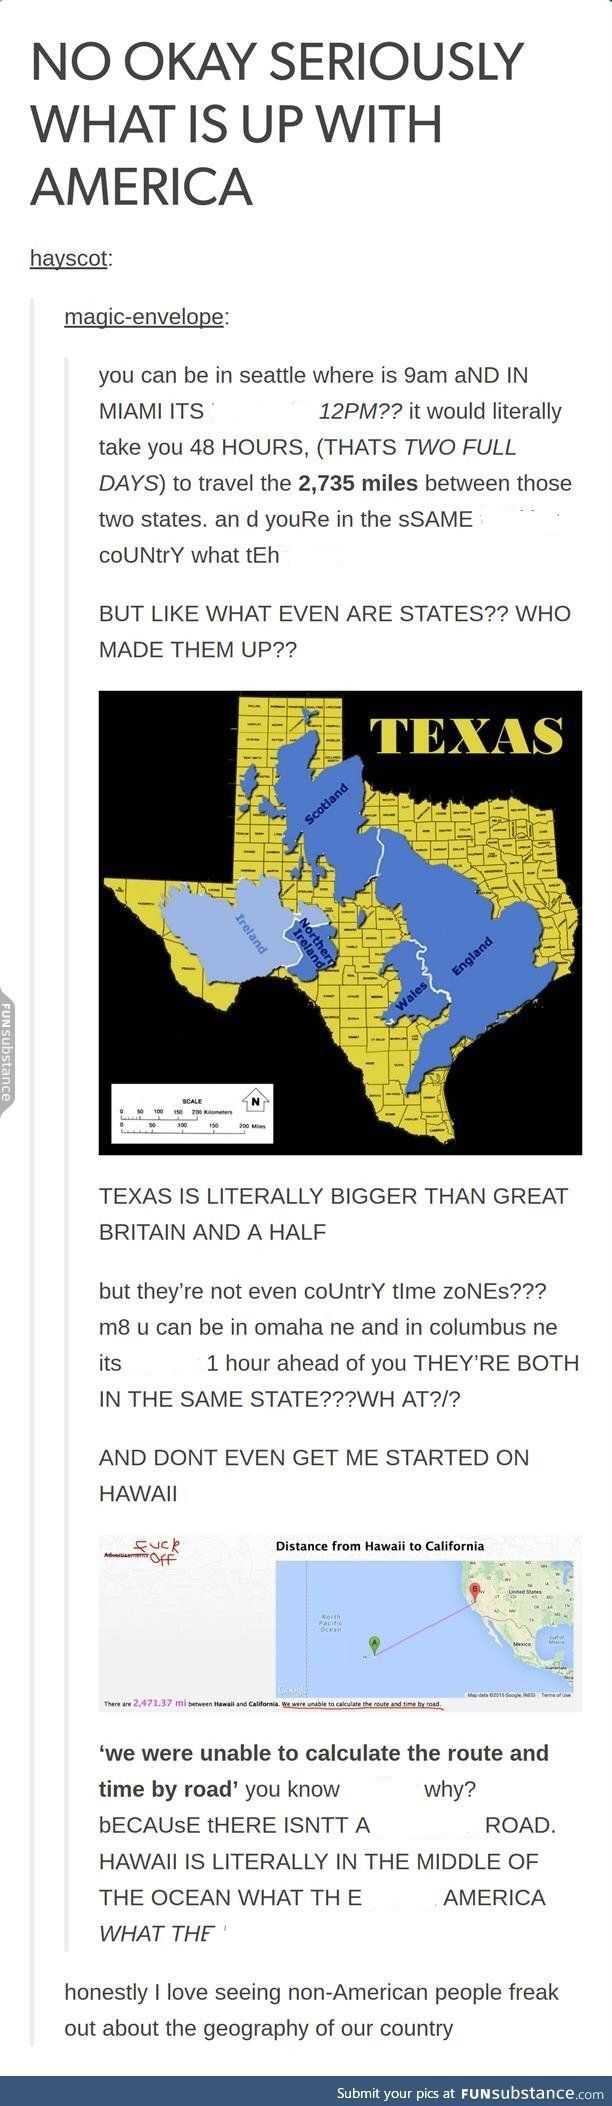 This is so funny, because I see it as normal and then other people freak out over the size of the country. XD